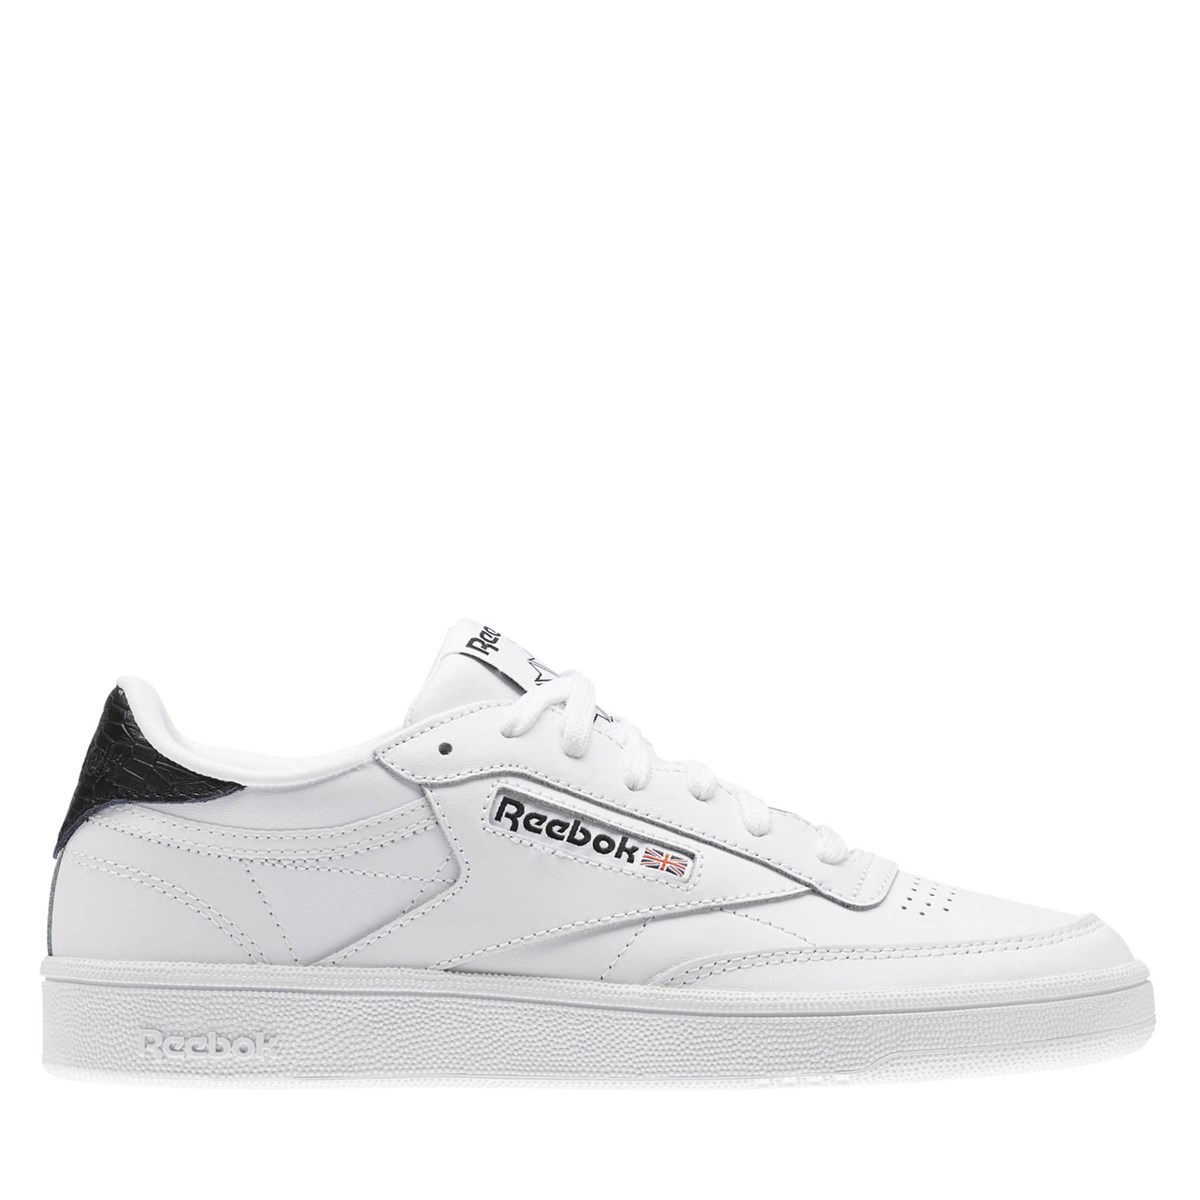 a6769d40354 Women s Club C 85 Emboss White Sneaker. Previous. default view ...